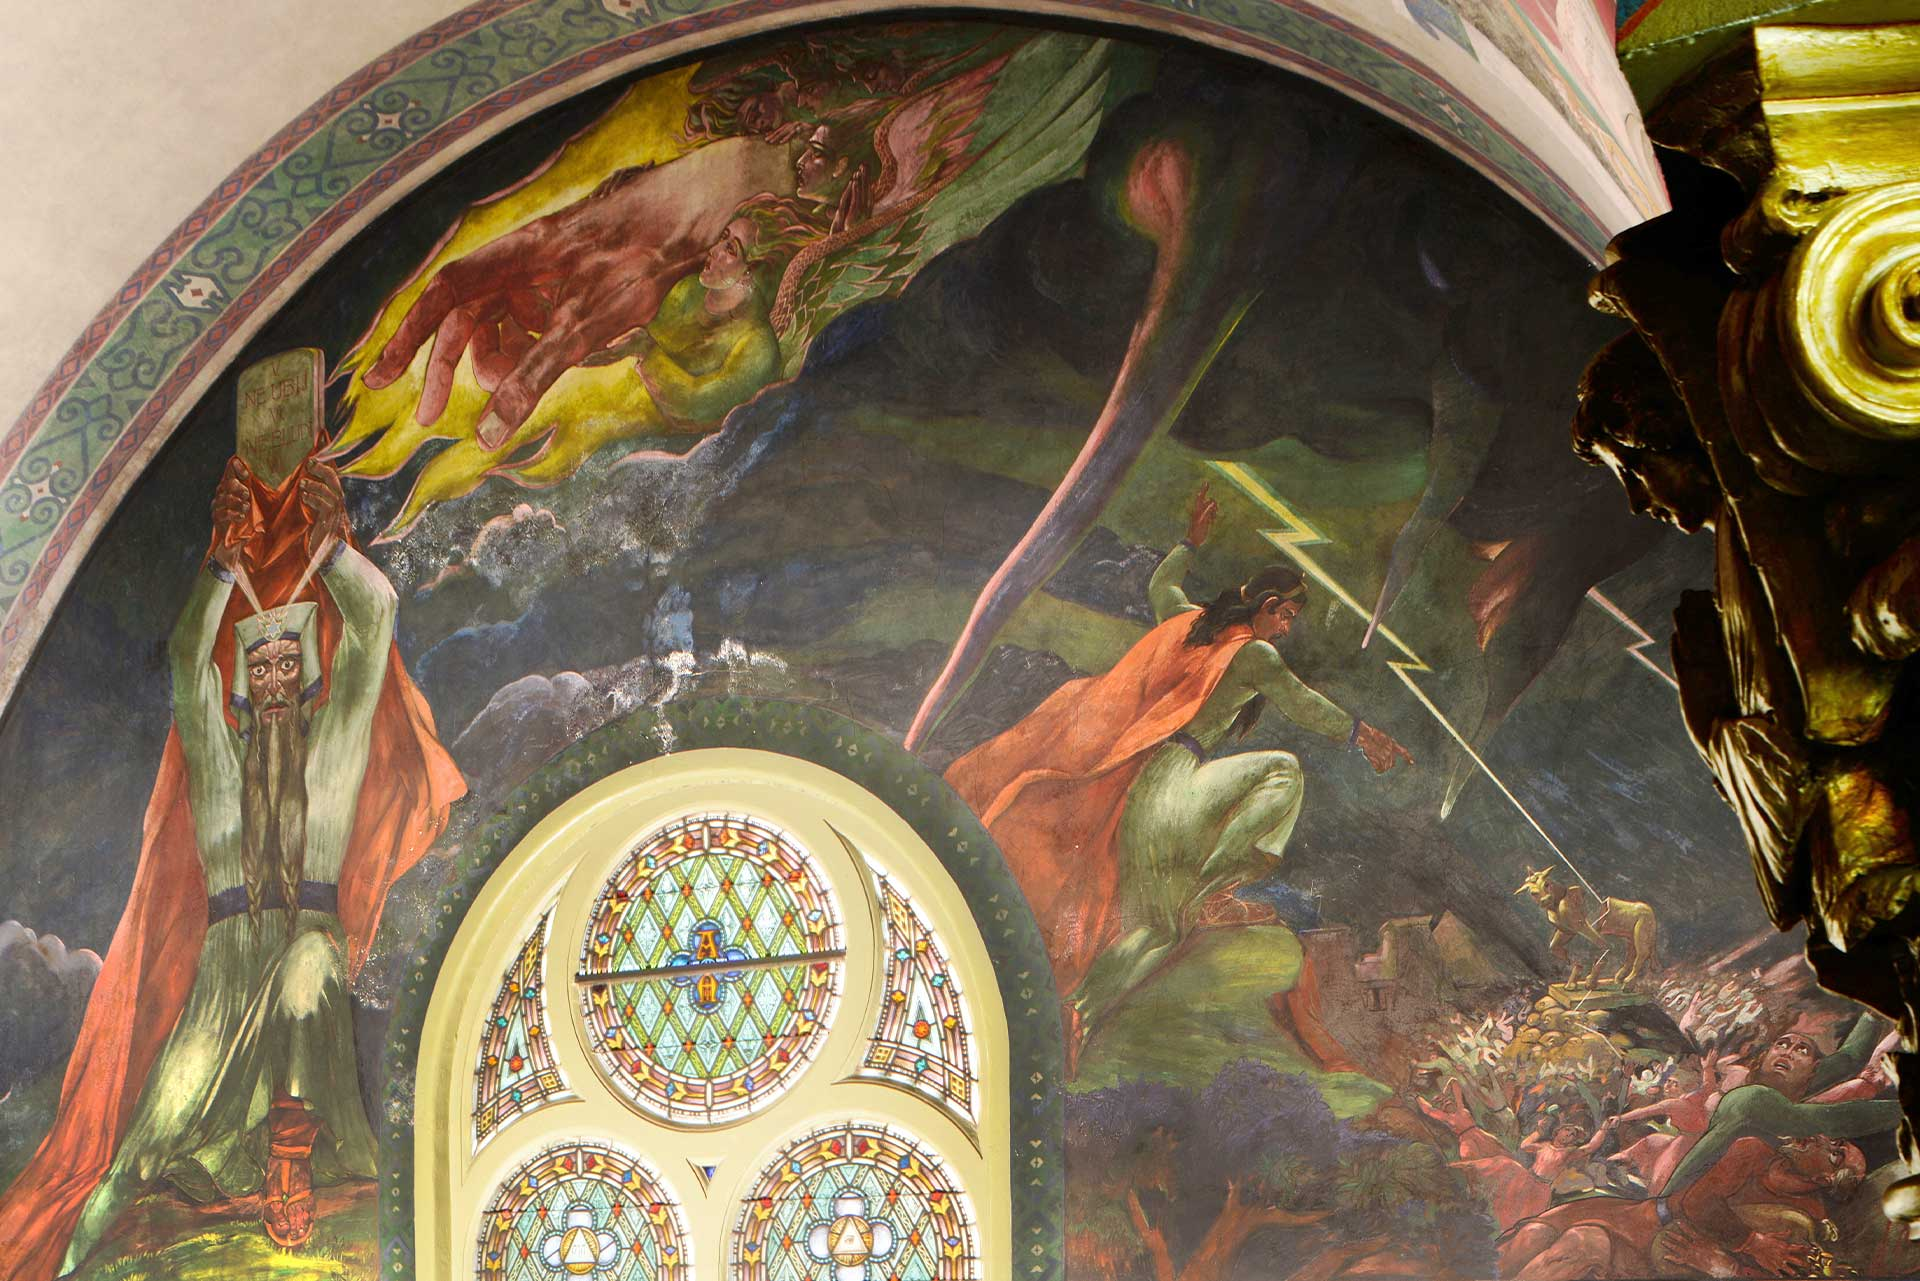 The Old Testament Mural